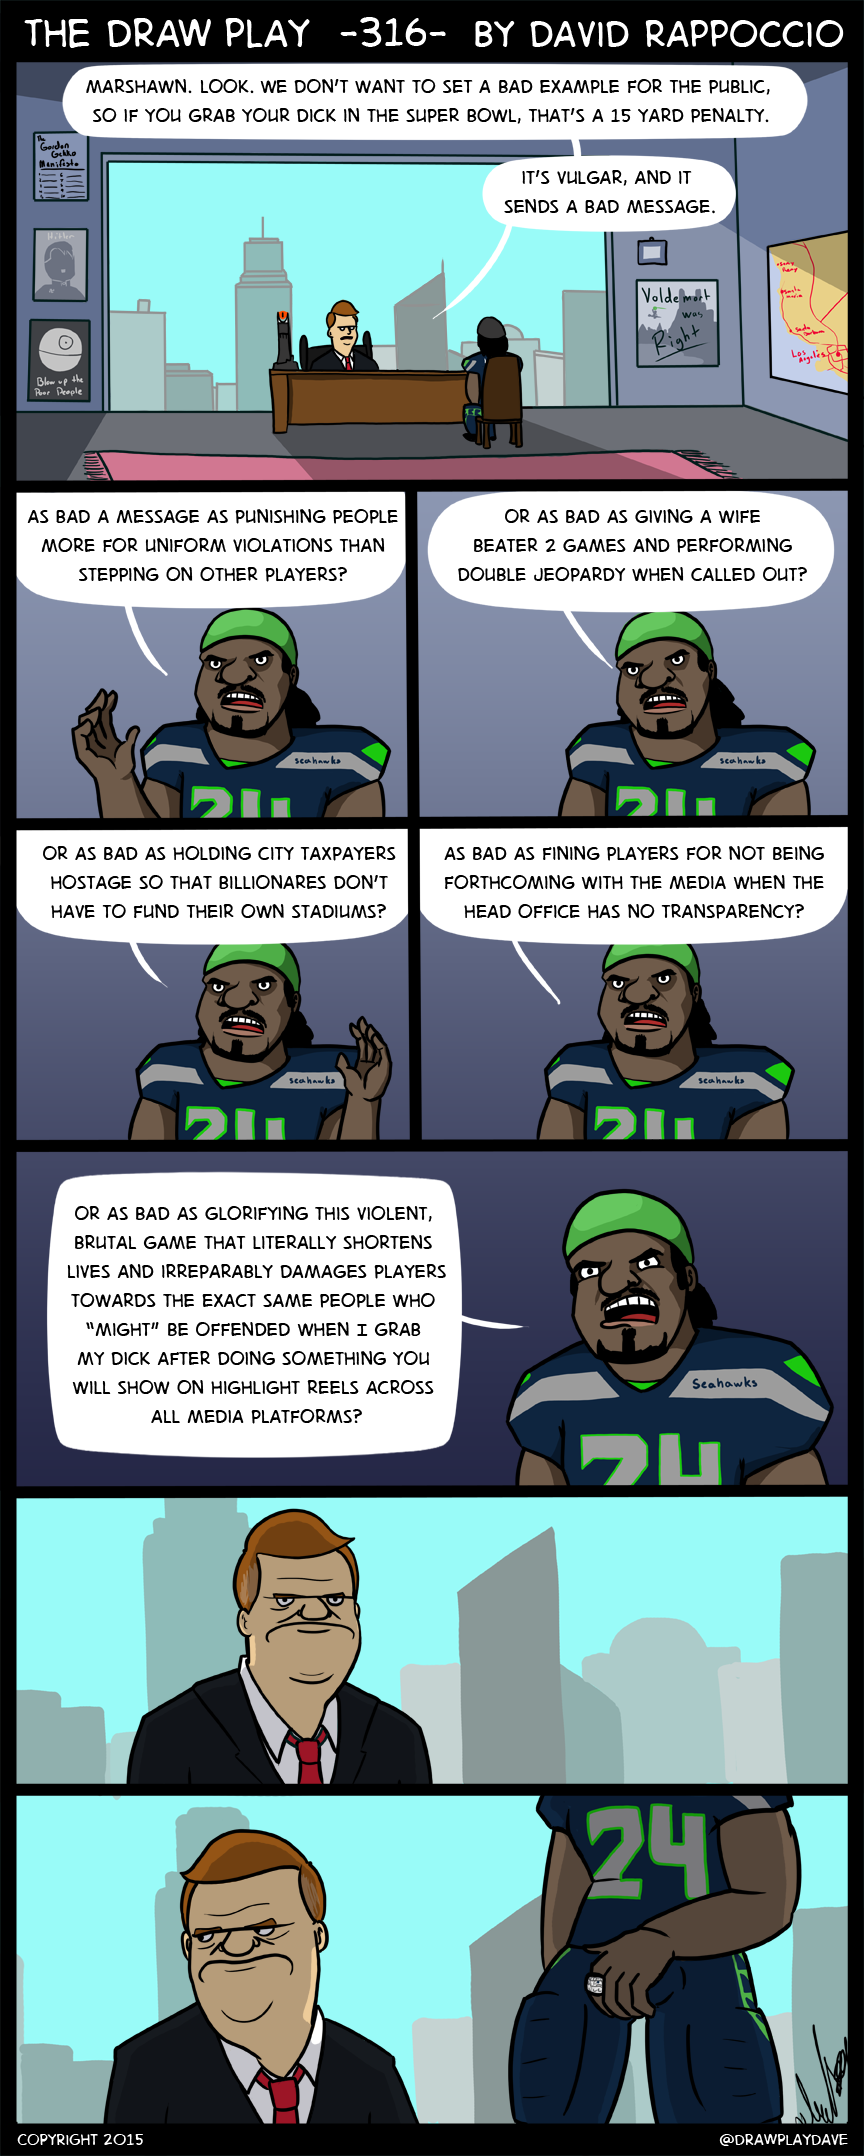 Drawn playing dave rappoccio Vs Archives NFL The Lynch